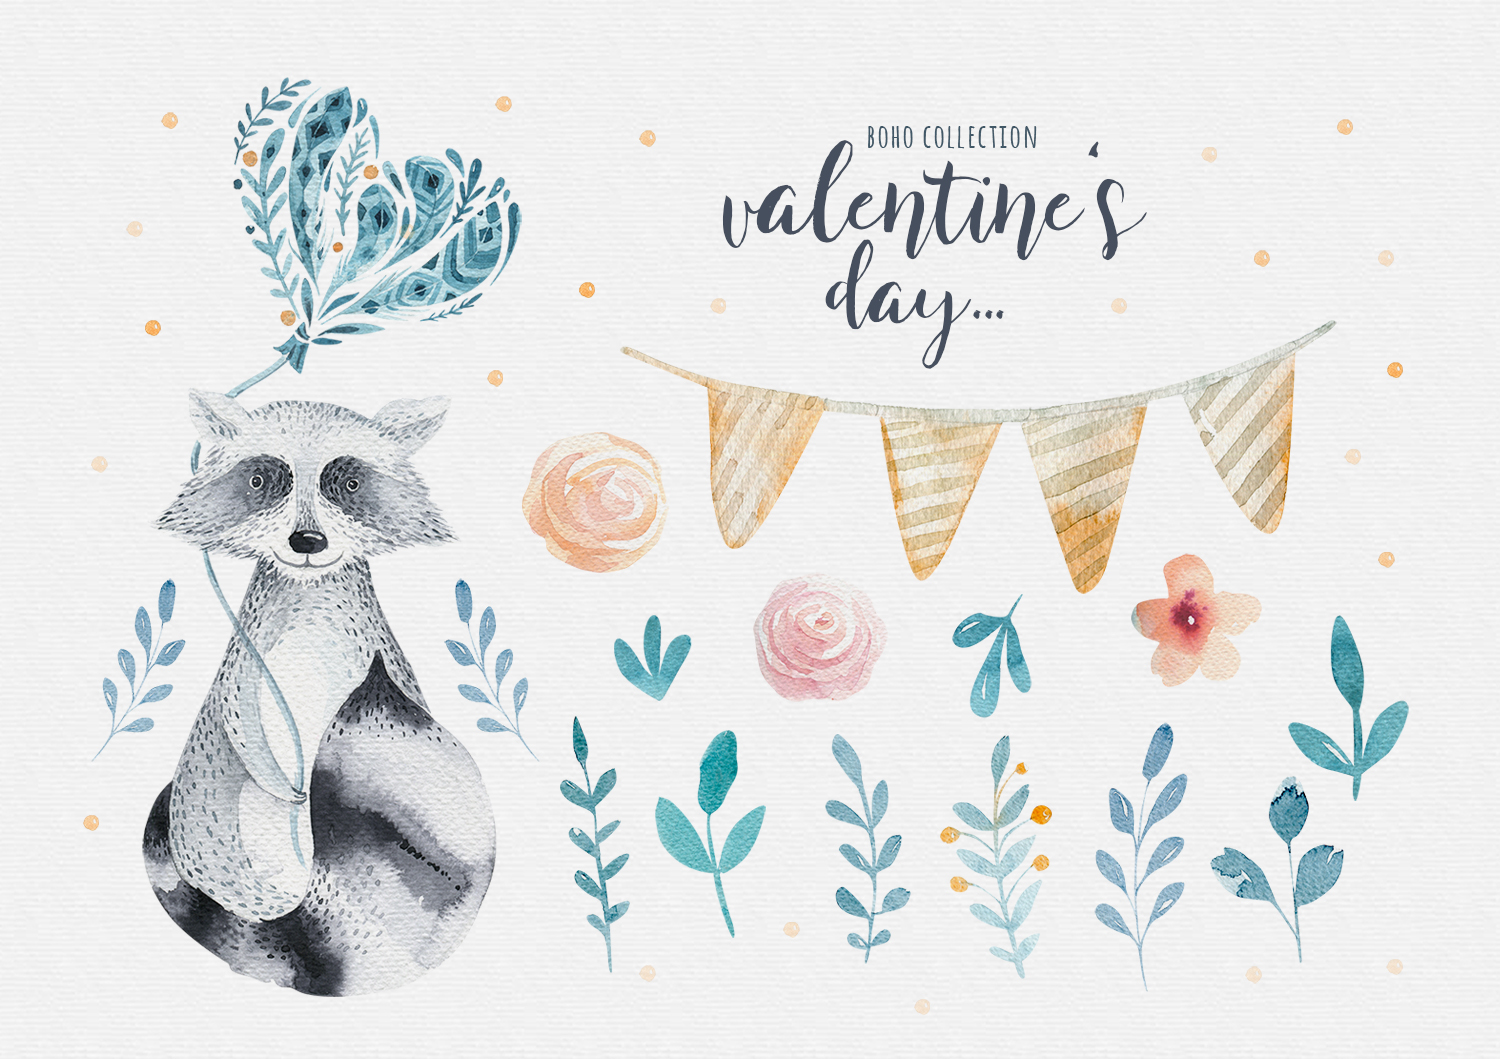 Valentine's Day with raccoons example image 2